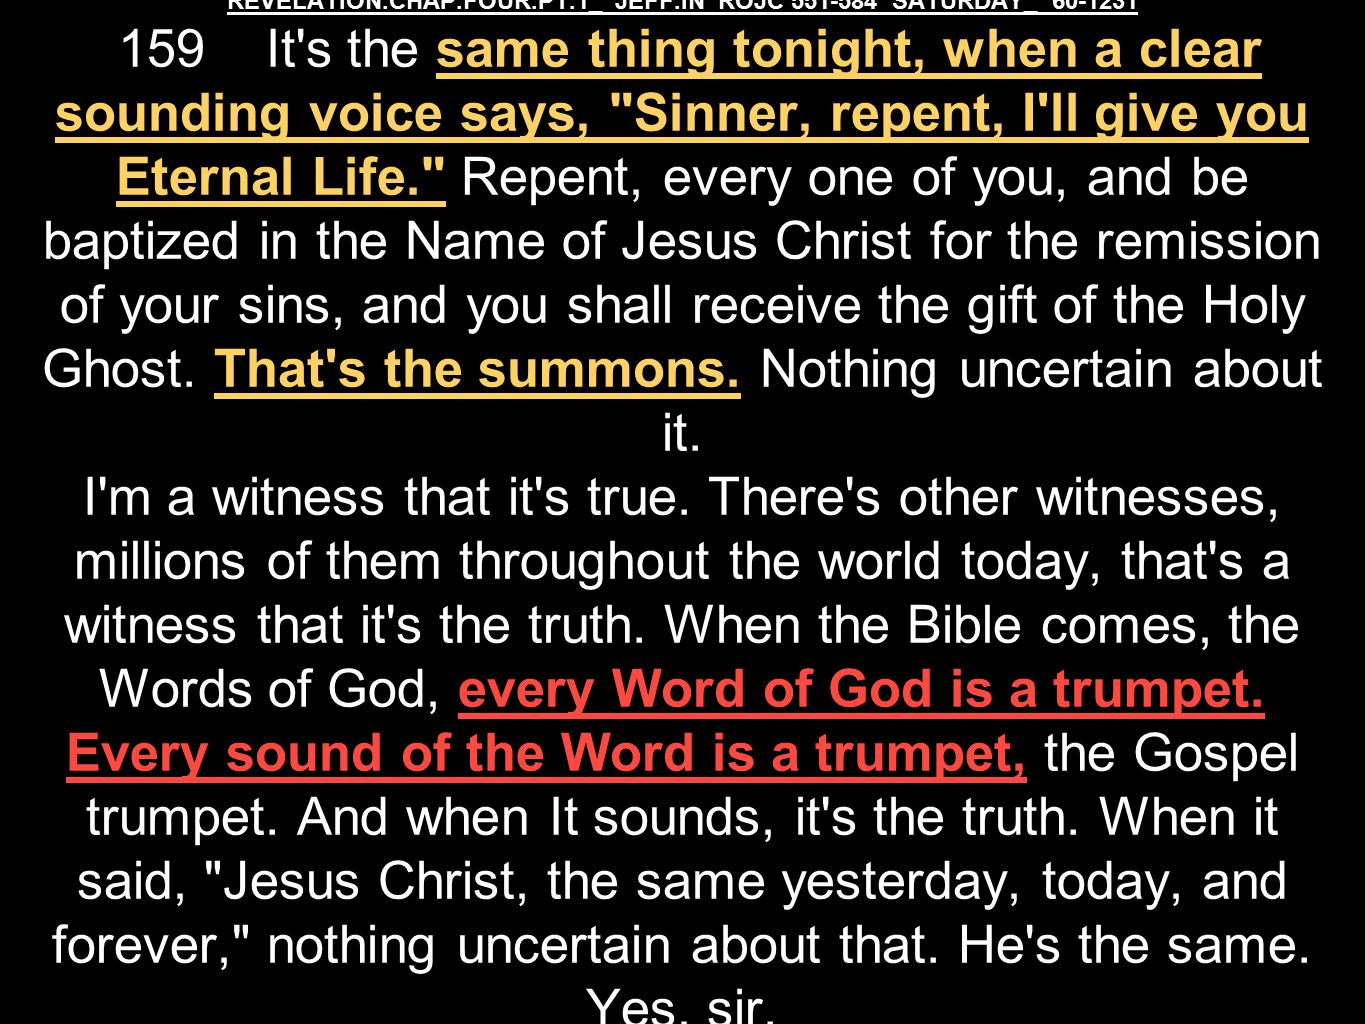 REVELATION.CHAP.FOUR.PT.1_ JEFF.IN ROJC 551-584 SATURDAY_ 60-1231 159 It s the same thing tonight, when a clear sounding voice says, Sinner, repent, I ll give you Eternal Life. Repent, every one of you, and be baptized in the Name of Jesus Christ for the remission of your sins, and you shall receive the gift of the Holy Ghost.